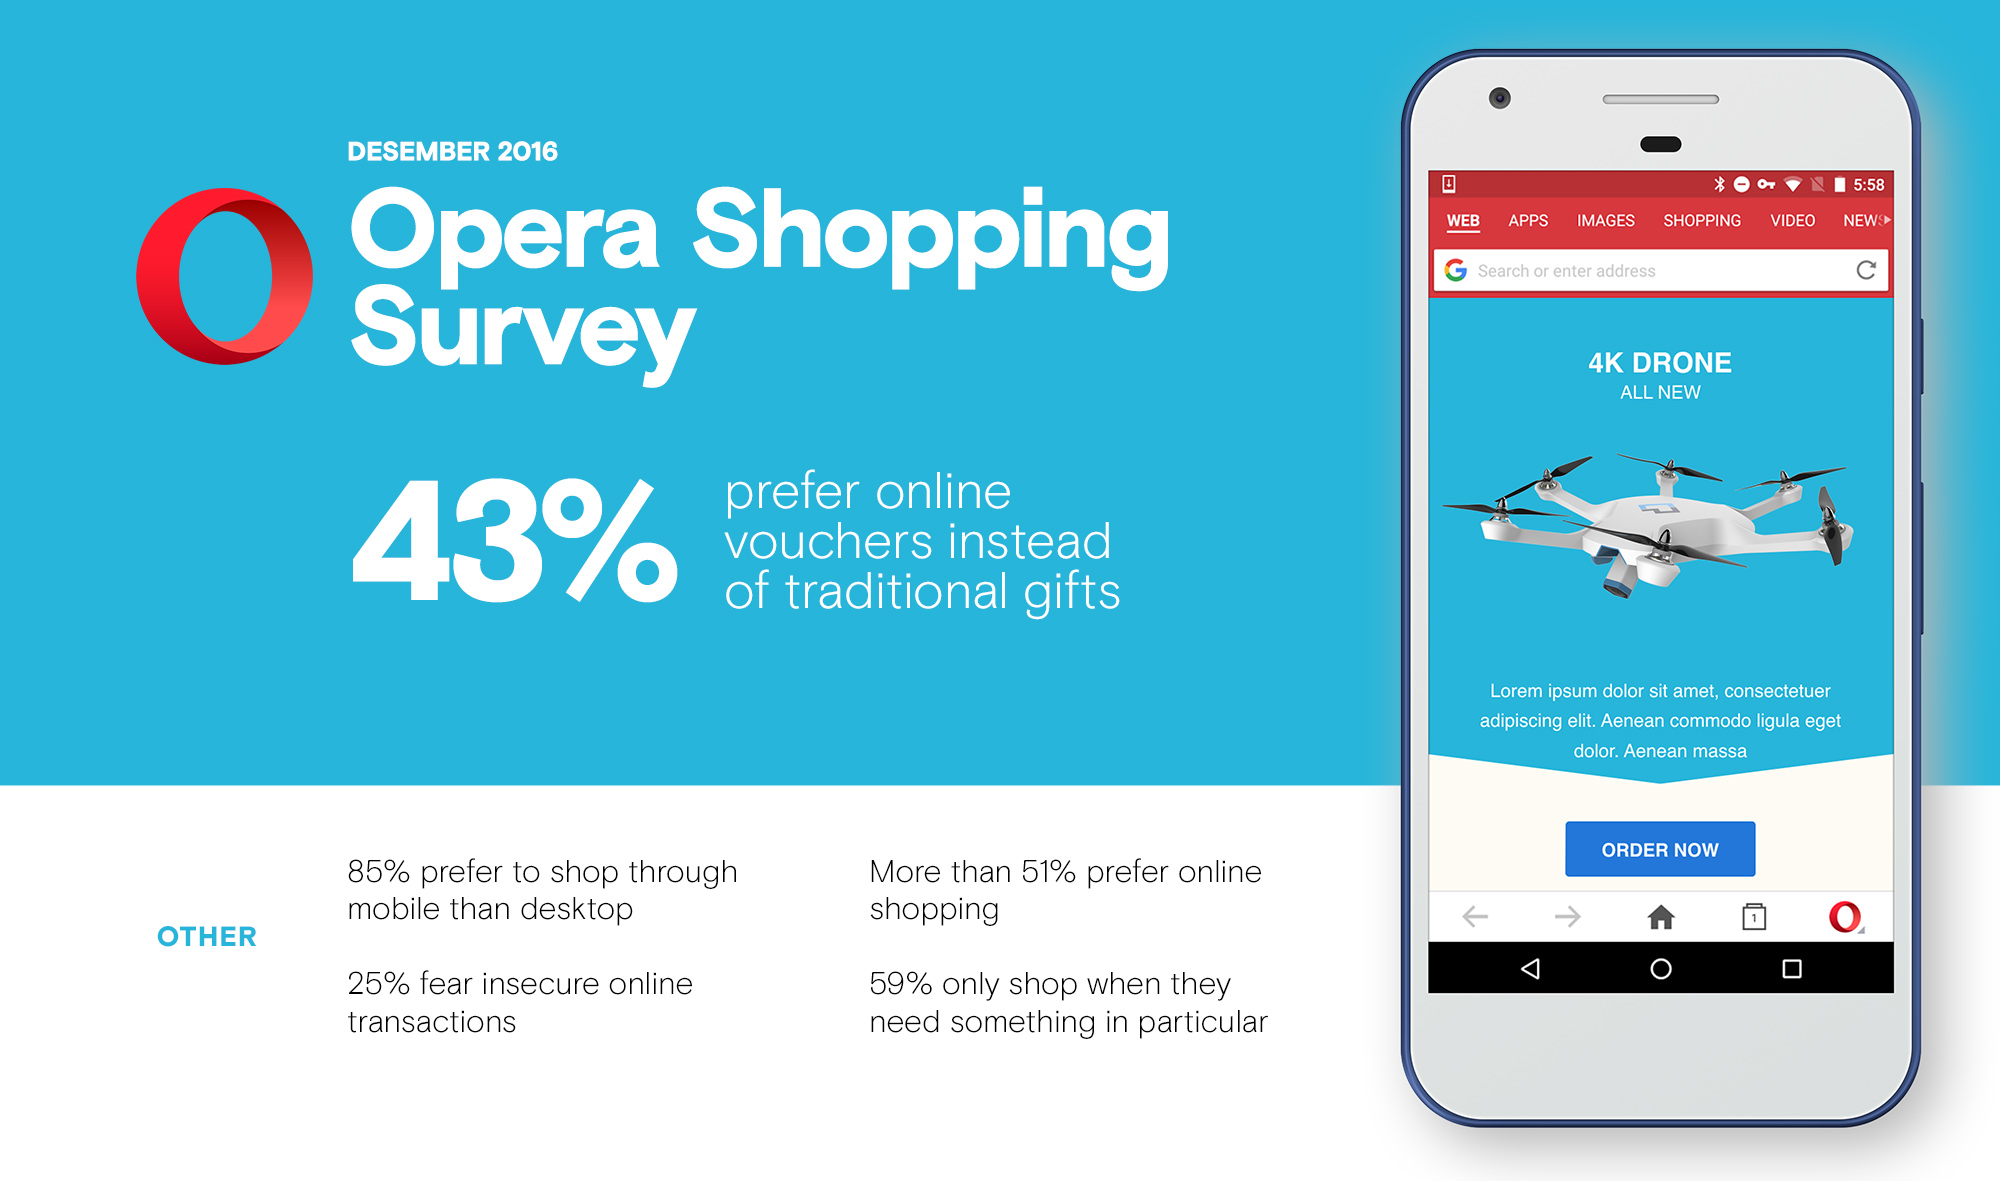 a444176265b9 ... as some 85% of those surveyed used specific shopping apps or a mobile  browser to shop online. Only 15% preferred to use their desktop ...